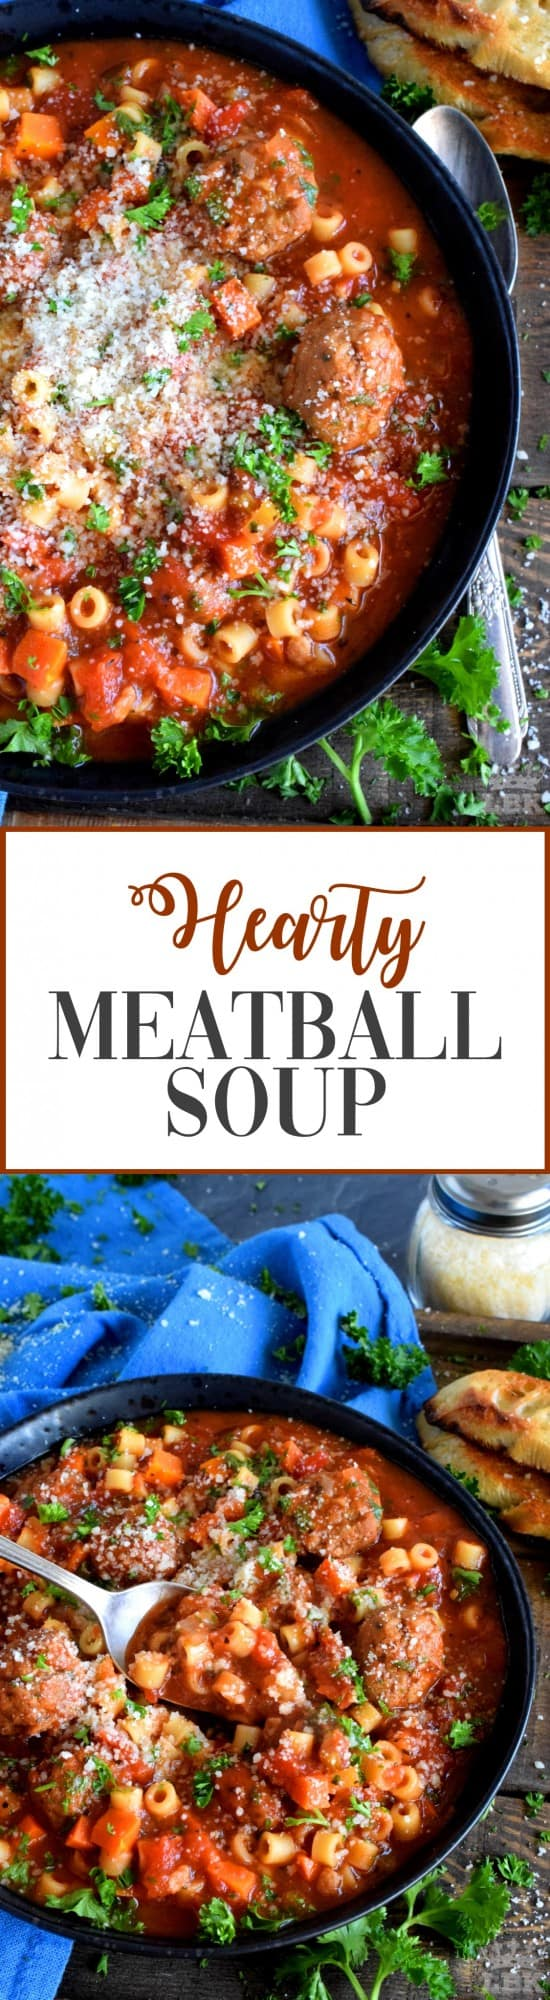 Hearty Meatball Soup - Hearty Meatball Soup is a soup that tastes like a big bowl of homemade pasta and meatballs, but more comforting and warming!#soup #stew #pasta #meatballs #homemade